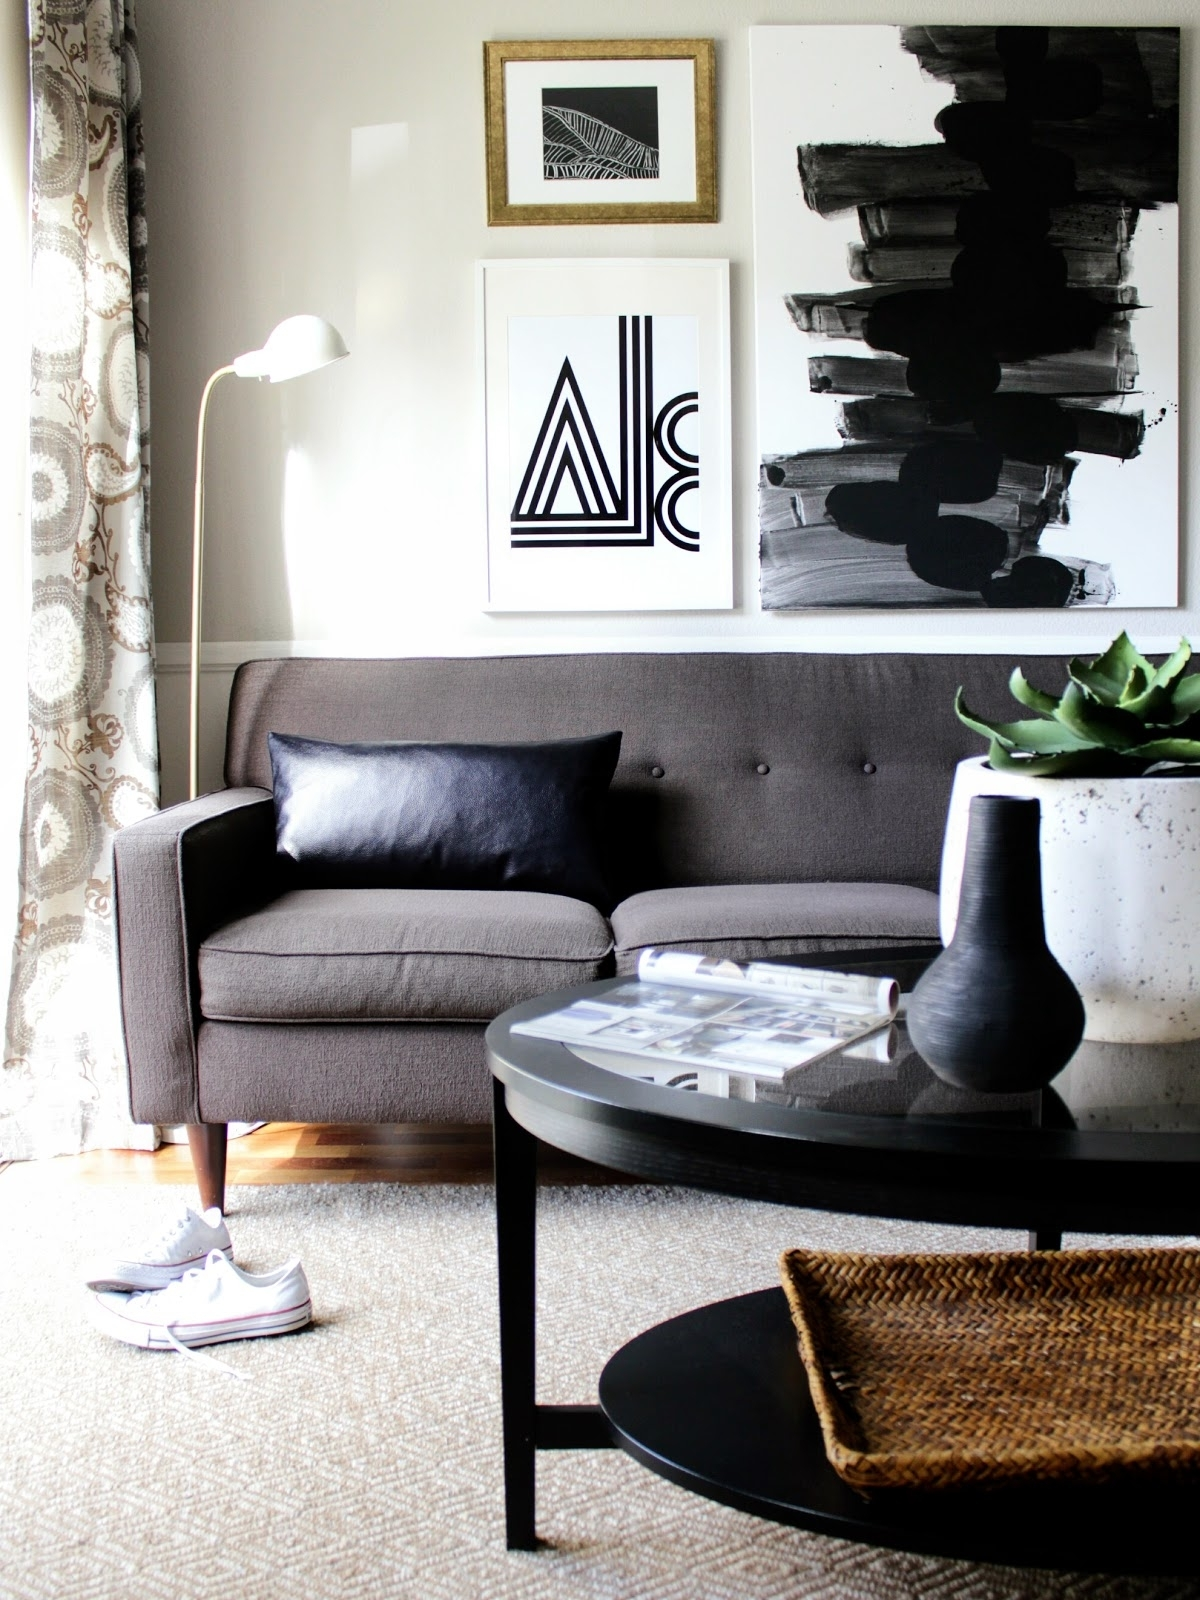 Affordable Wall Art With Most Up To Date Oscar Bravo Home: Affordable Wall Art Ideas Tips And Tricks (Gallery 15 of 20)